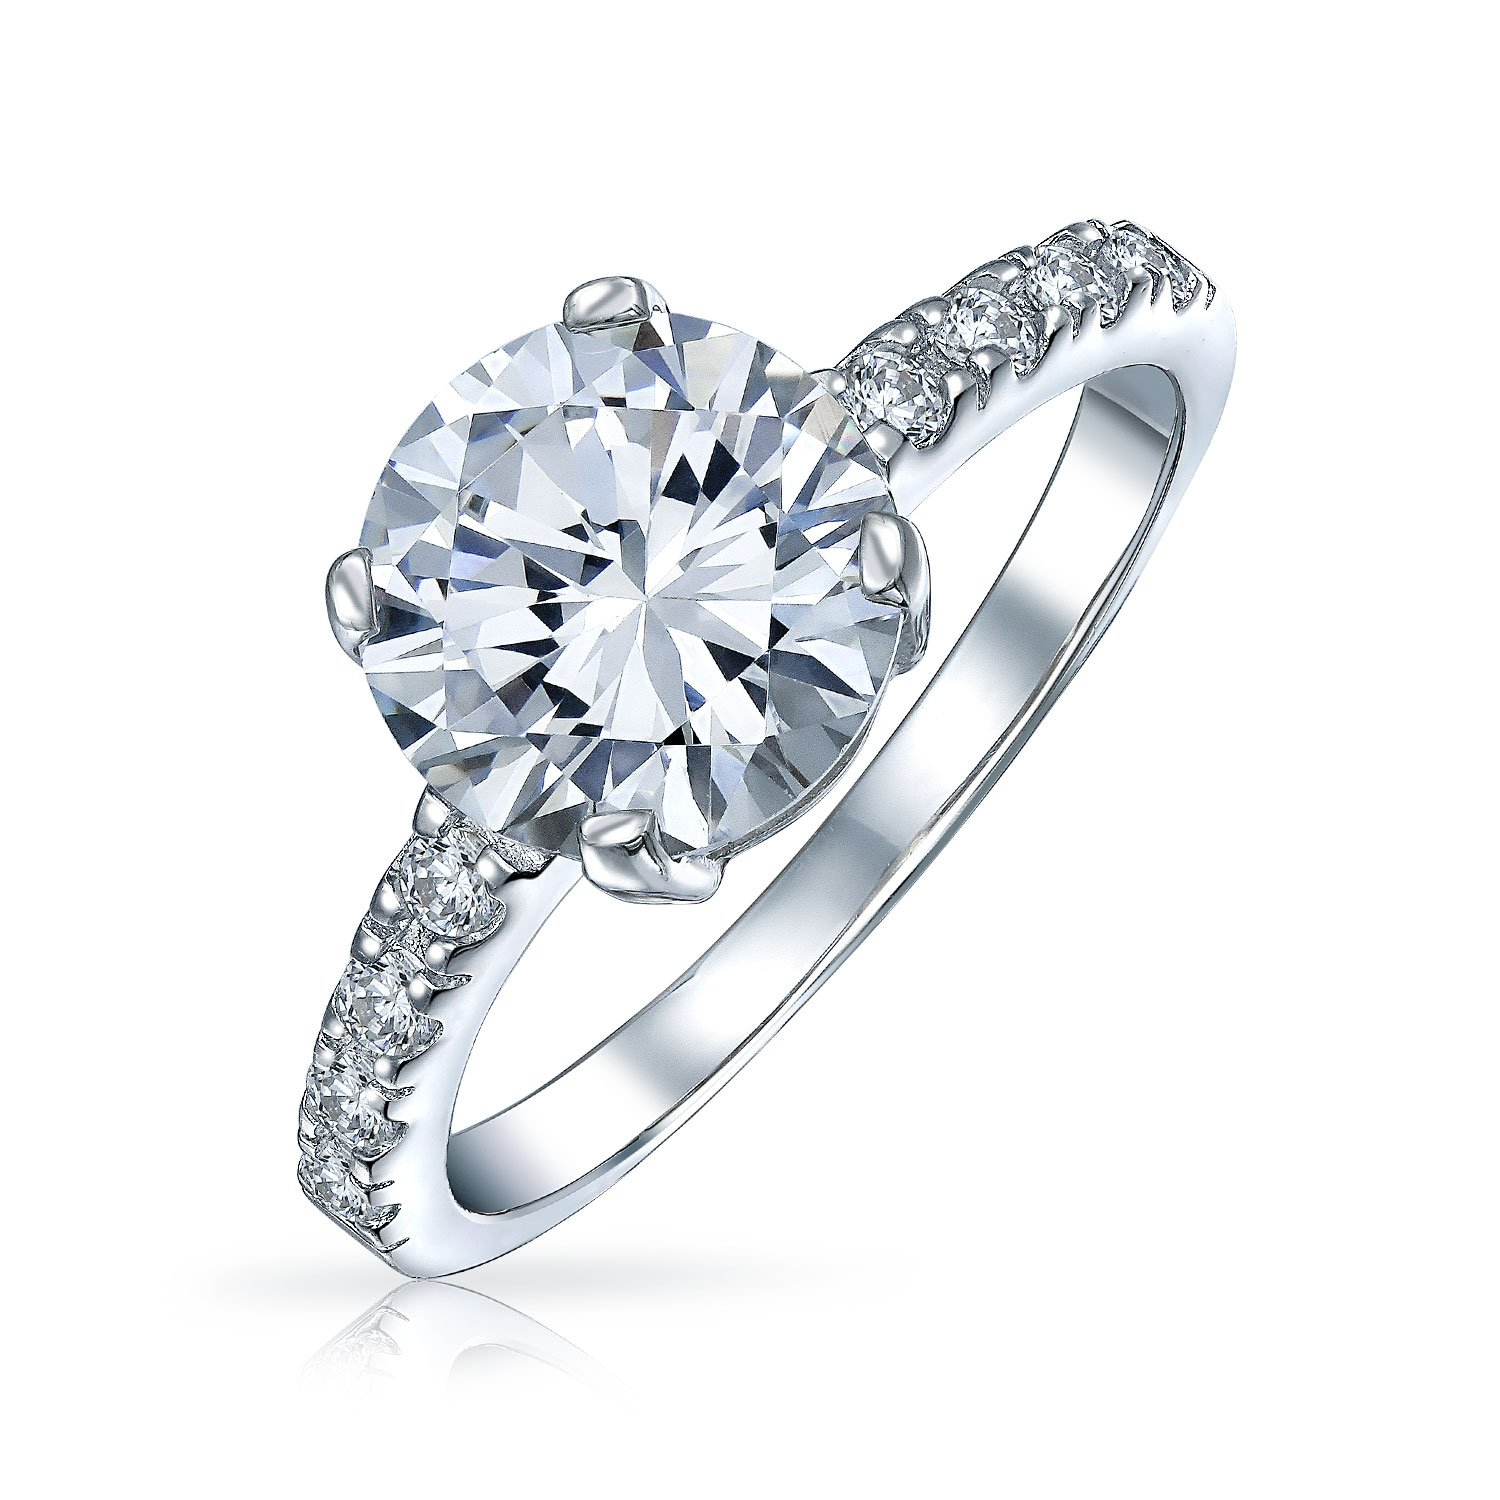 Bling Jewelry Round 3.5ct CZ Solitaire Engagement Ring with Side Stones Sterling Silver YC-YCR1293